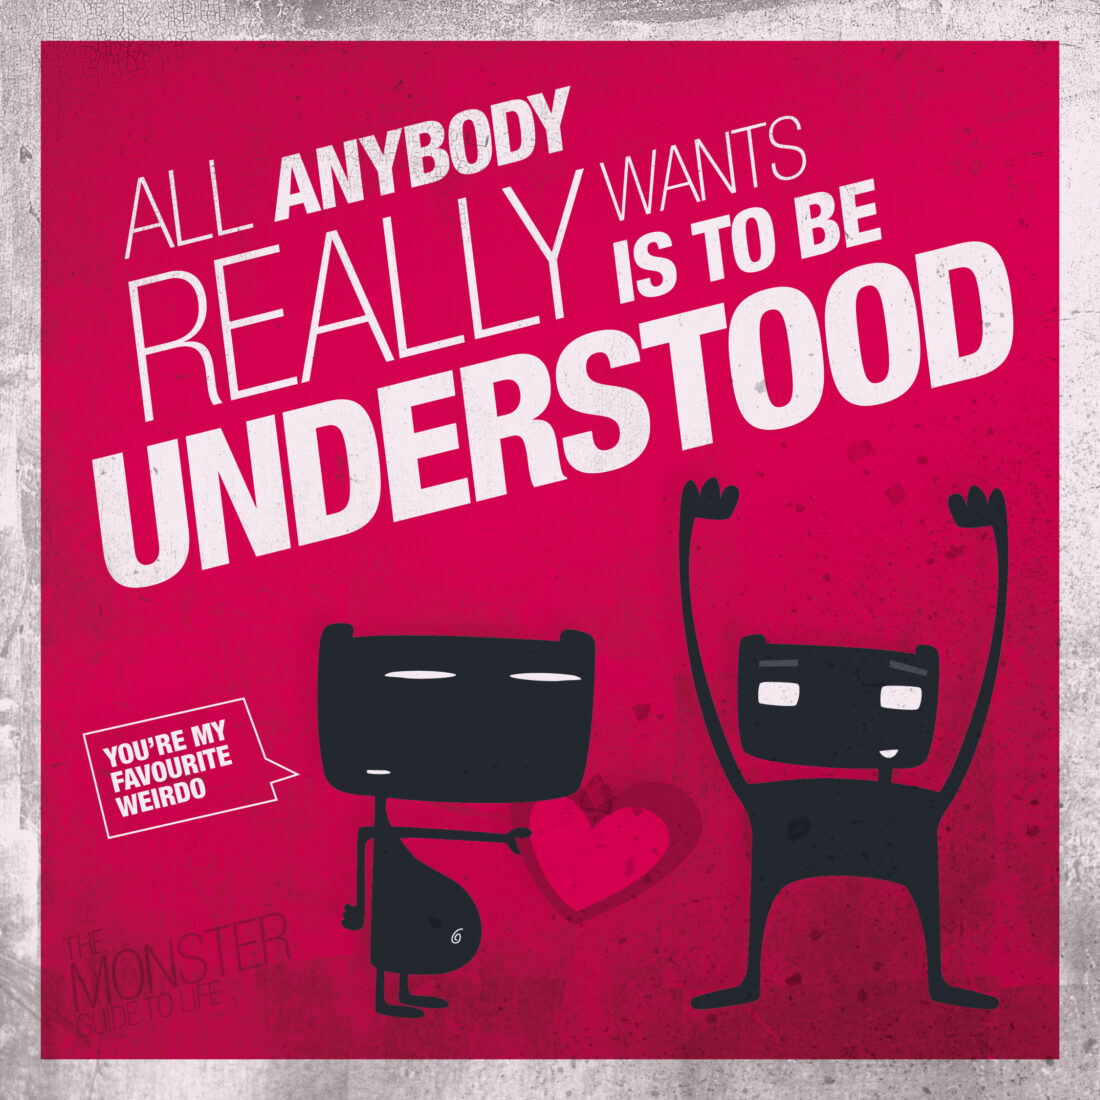 All anybody really wants is to be understood